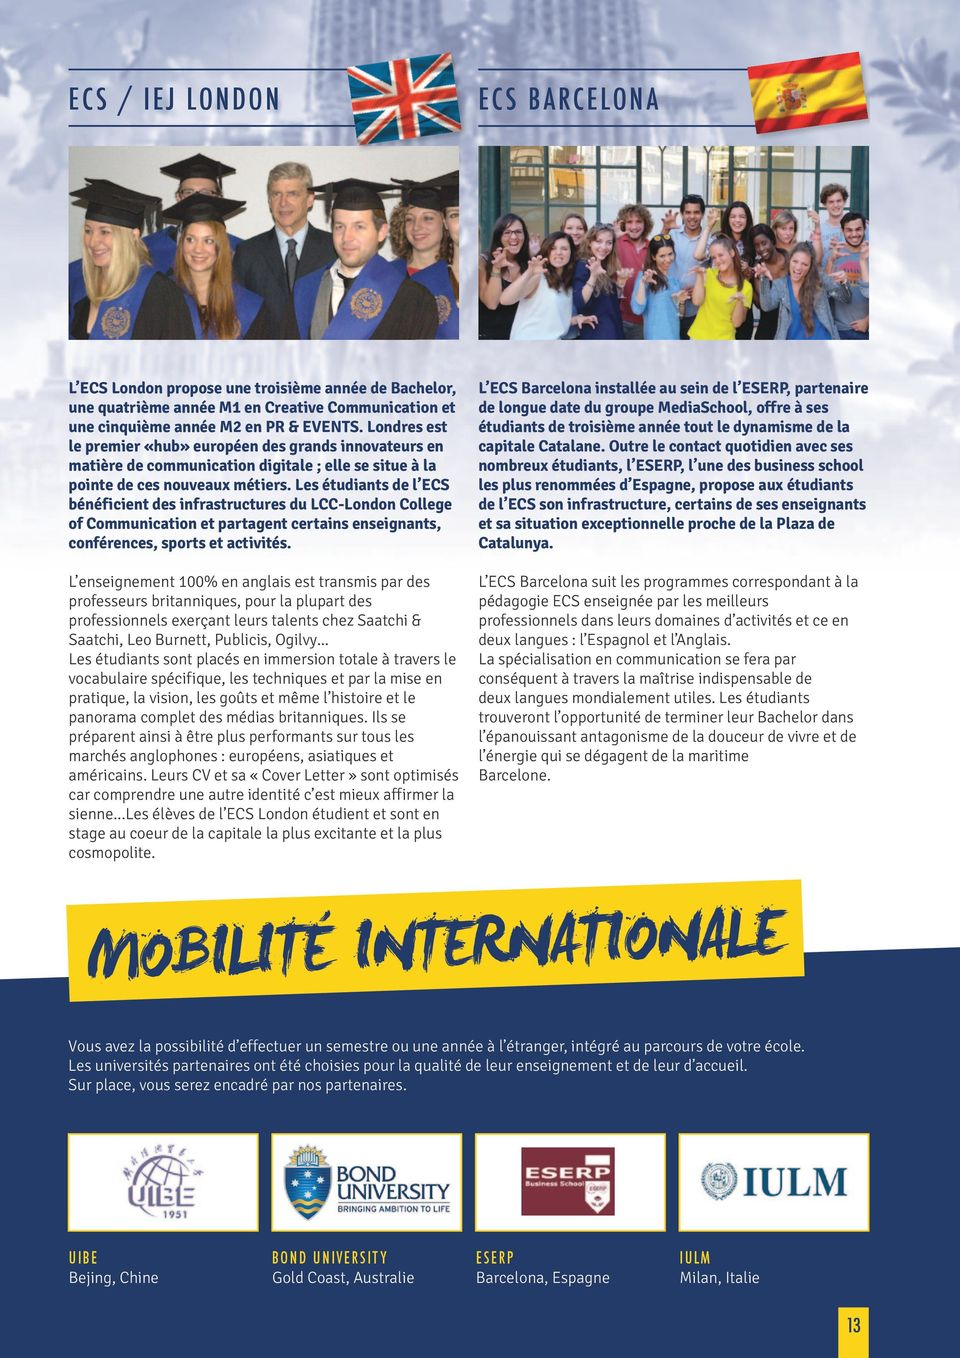 Les étudiants de l ECS bénéficient des infrastructures du LCC-London College of Communication et partagent certains enseignants, conférences, sports et activités.